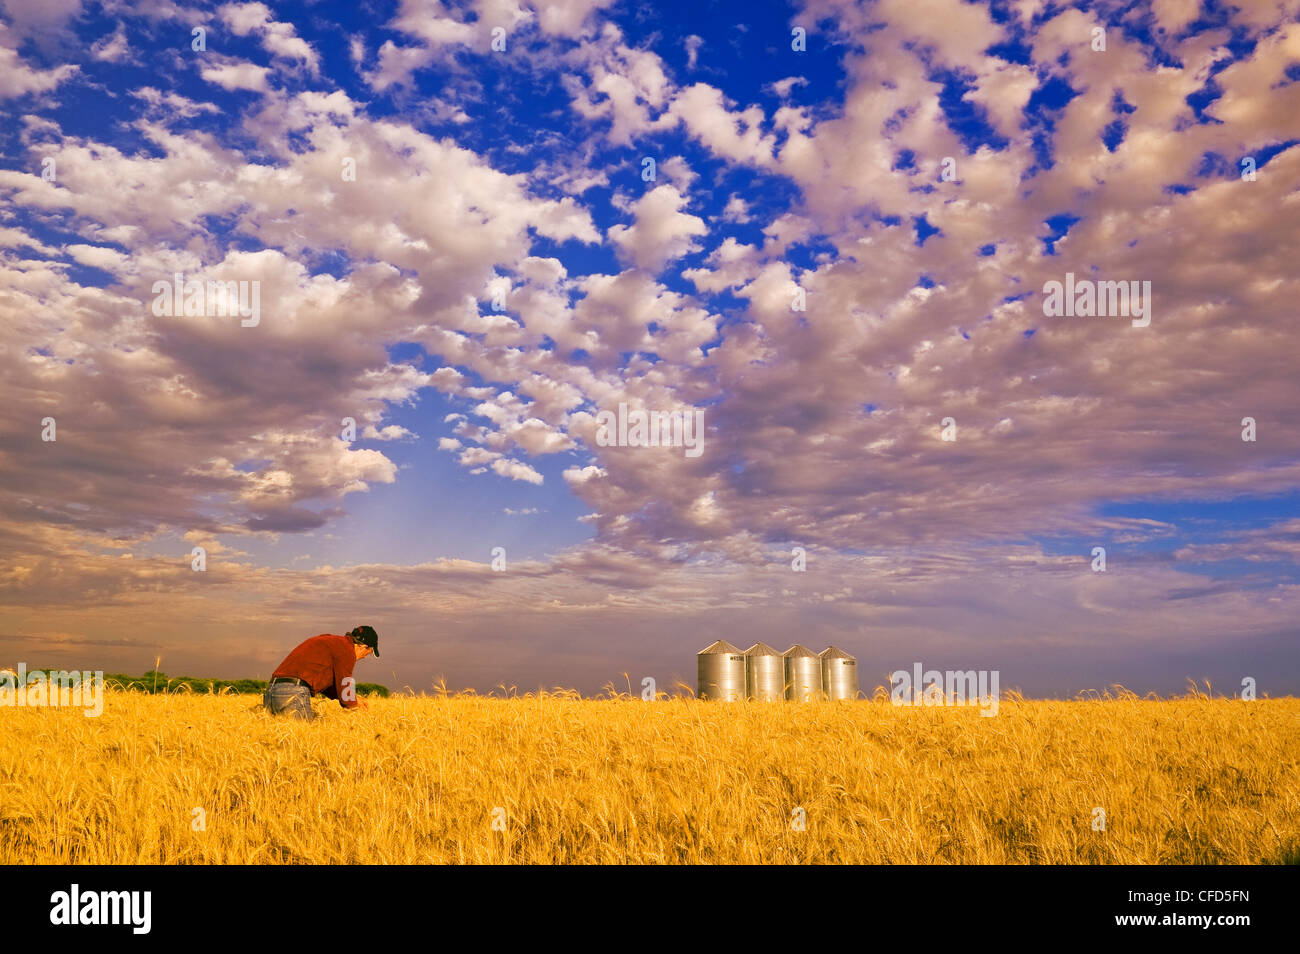 A man in a mature winter wheat field with grain bins in the background, near Carey, Manitoba, Canada - Stock Image